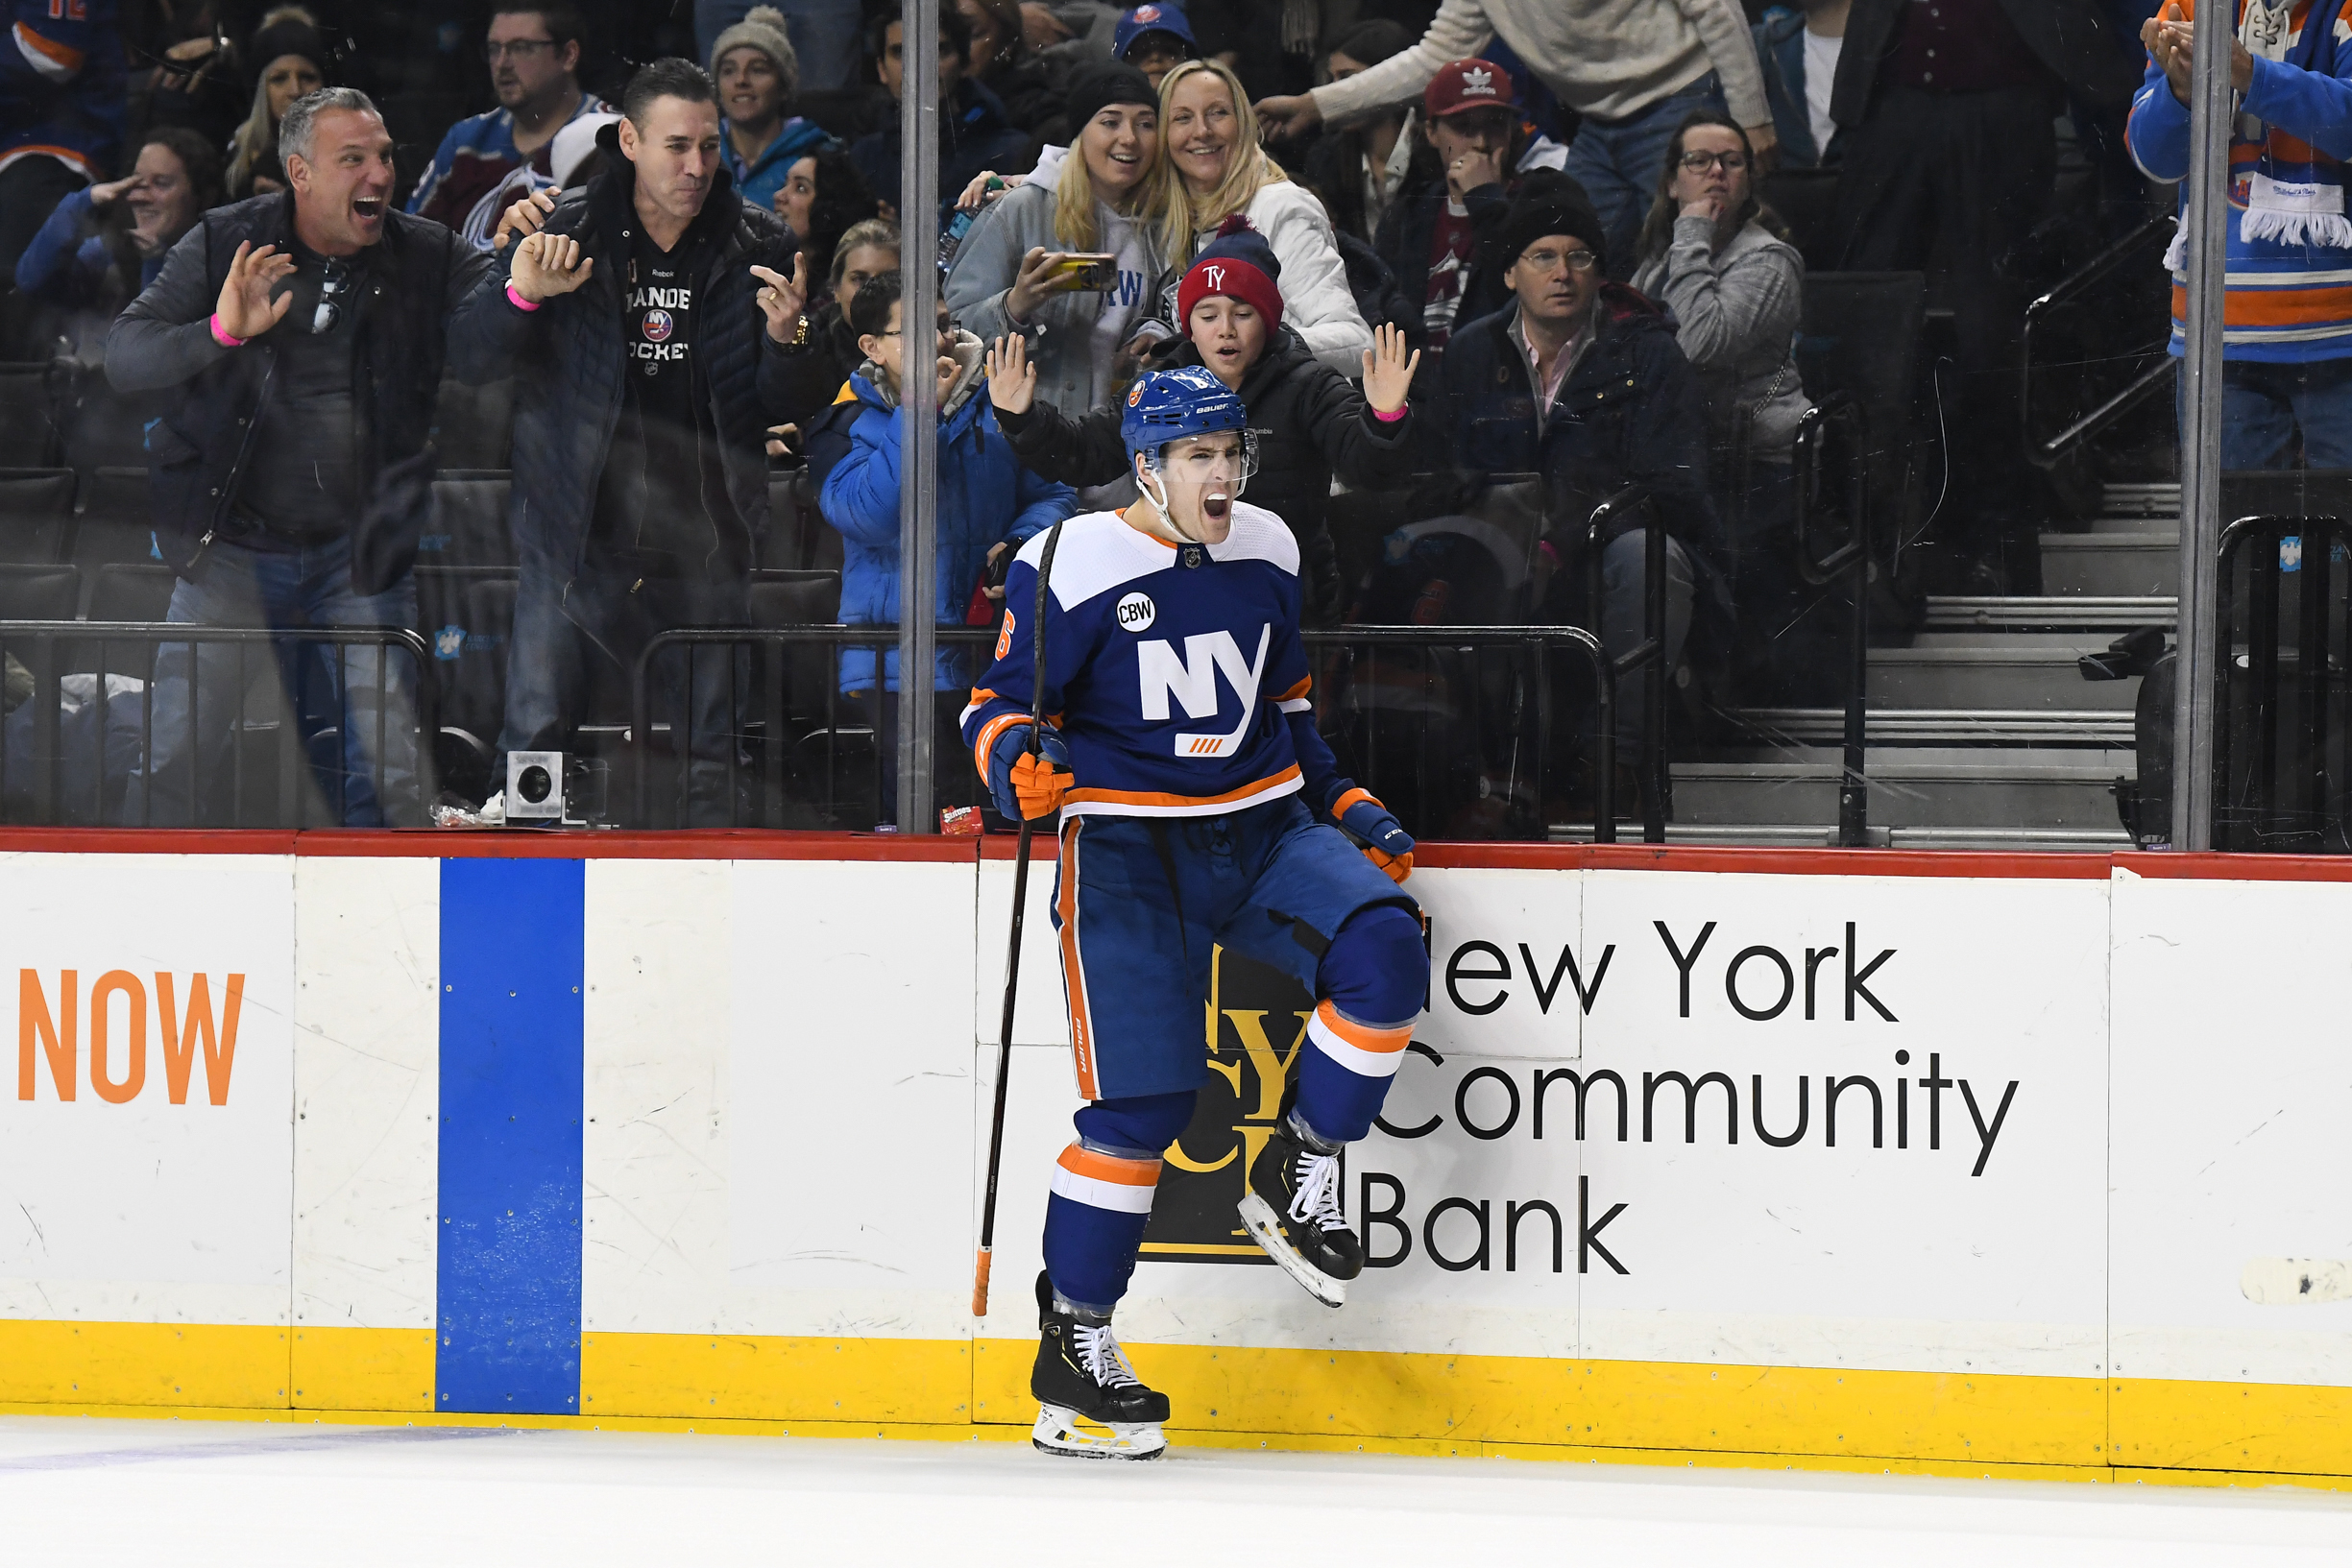 Feb 9, 2019; Brooklyn, NY, USA; New York Islanders defenseman Ryan Pulock (6) reacts after scoring in overtime against the Colorado Avalanche at Barclays Center. Mandatory Credit: Catalina Fragoso-USA TODAY Sports